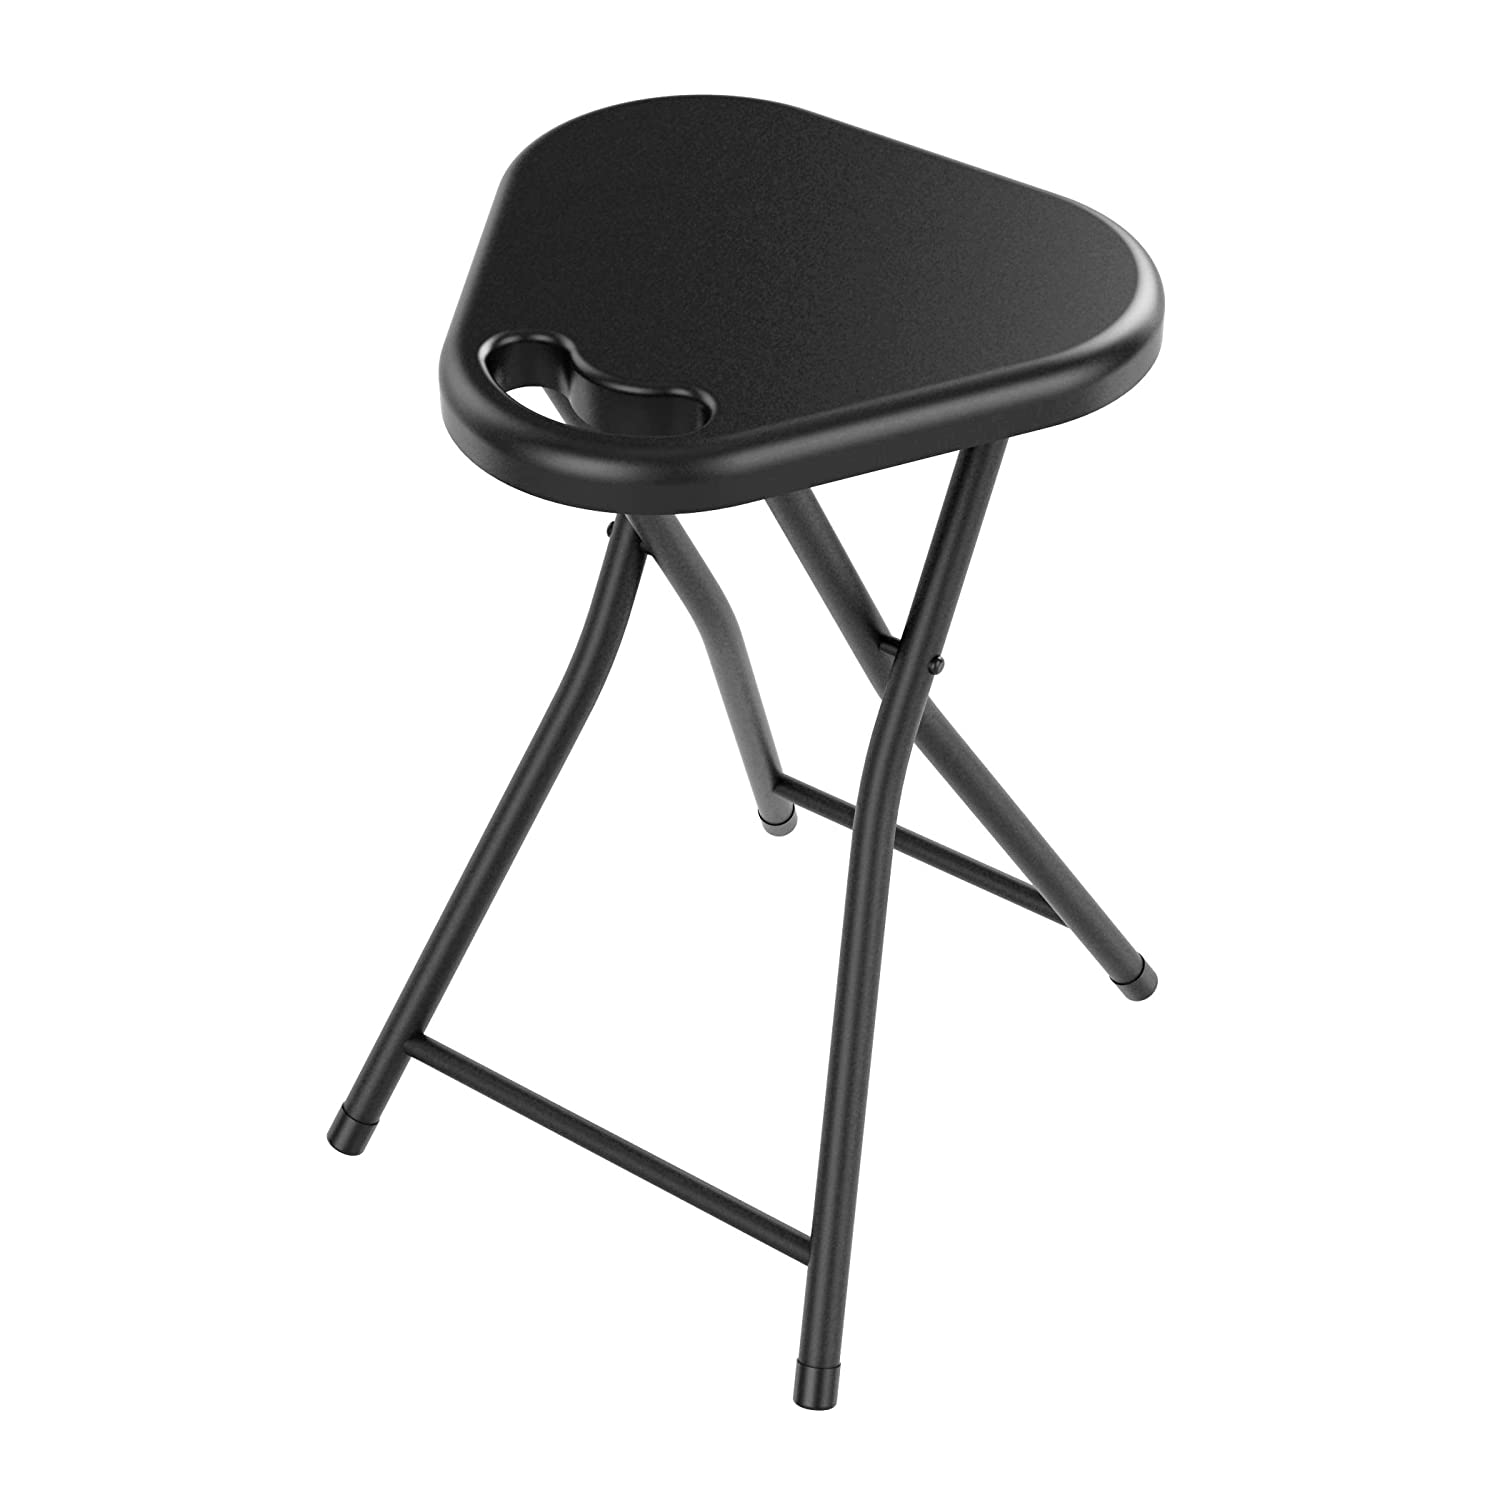 Amazon.com Atlantic Folding Stool with Handle Black (4-Pack) Kitchen u0026 Dining  sc 1 st  Amazon.com : portable collapsible stool - islam-shia.org